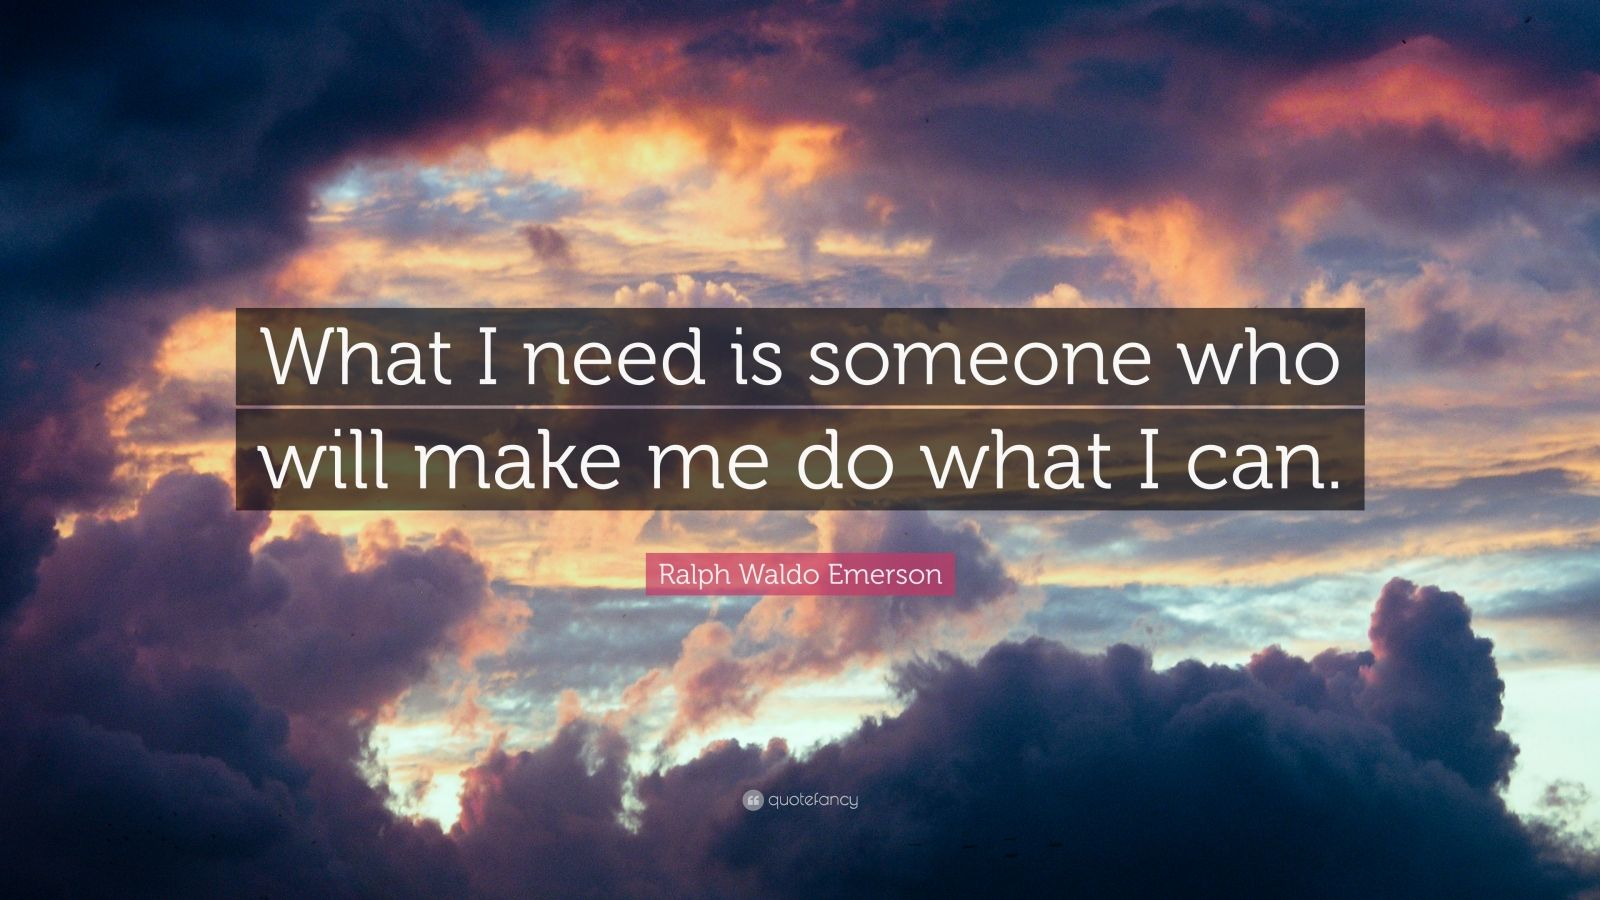 """Ralph Waldo Emerson Quote: """"What I need is someone who will make me do what I can."""""""